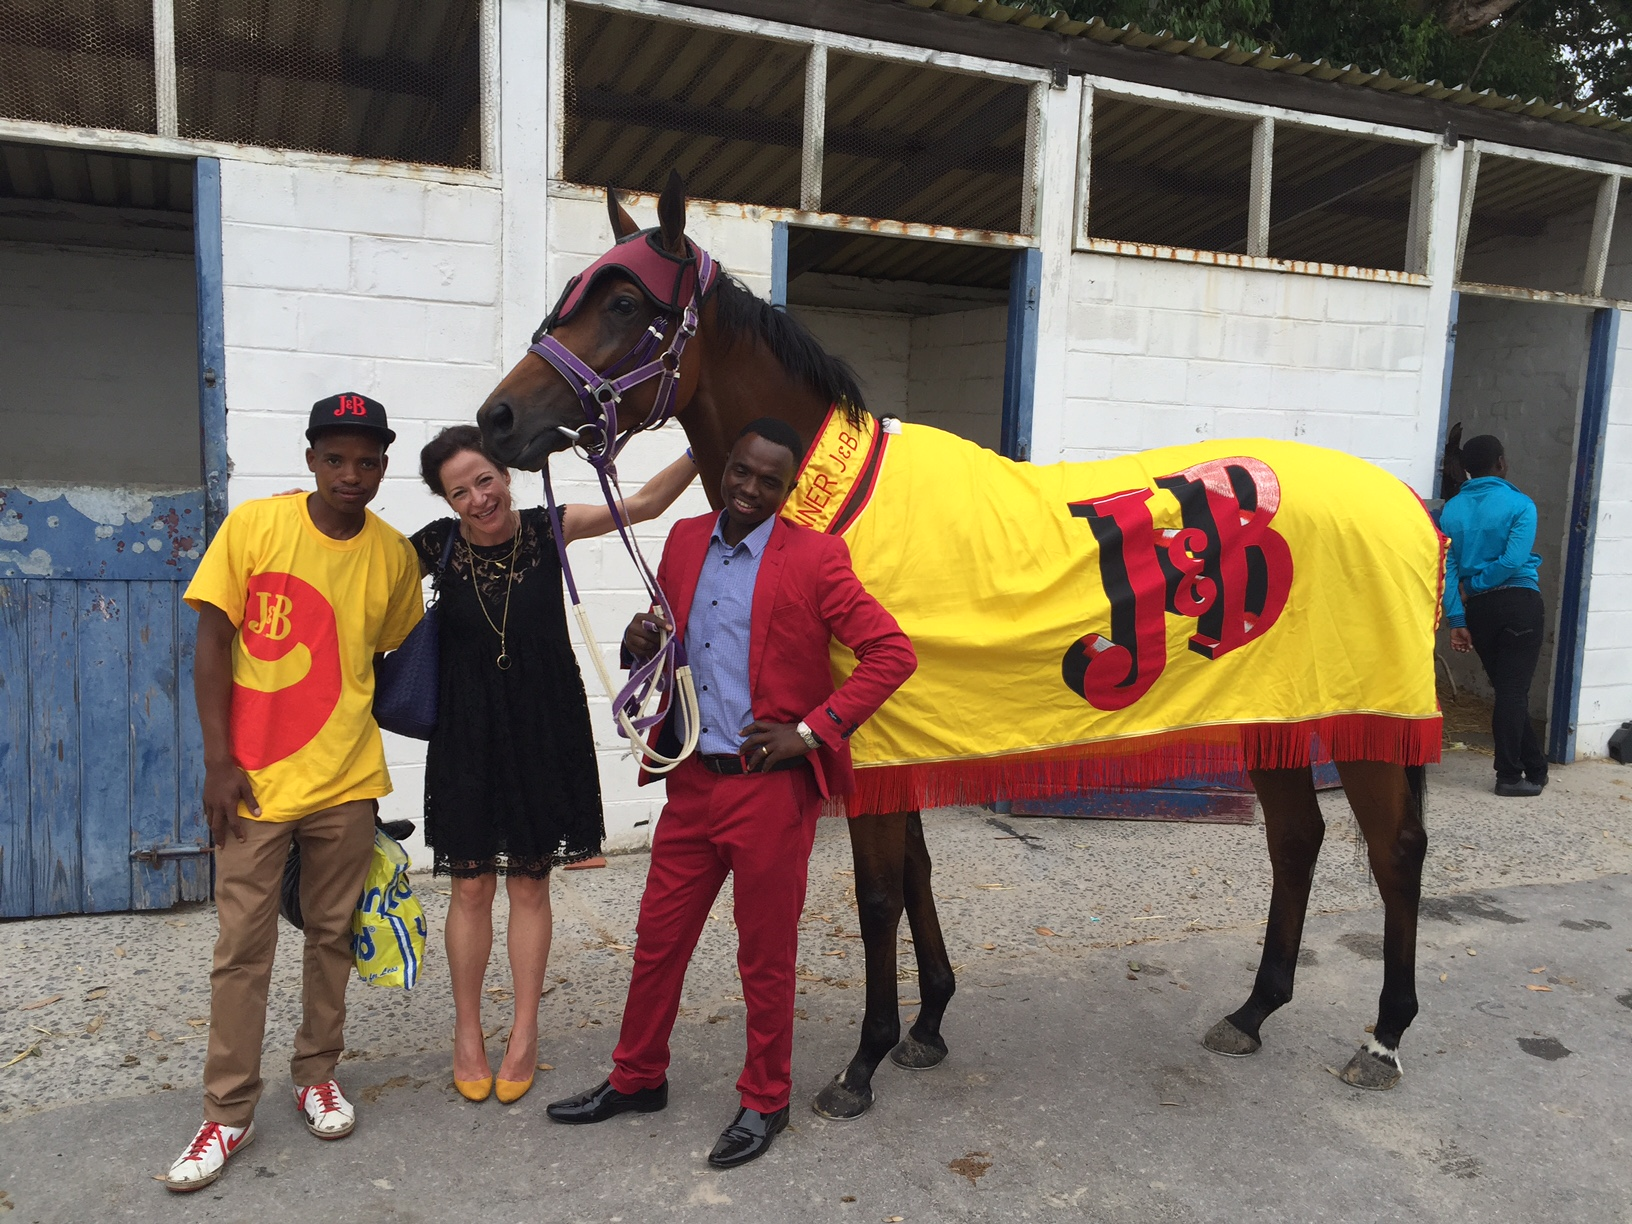 Smart team: Bangeli Mngeni (red suit), Jessica Slack and groom Akona Mqanda with Smart Call after her J&B Met victory. Photo: Mauritzfontein Stud